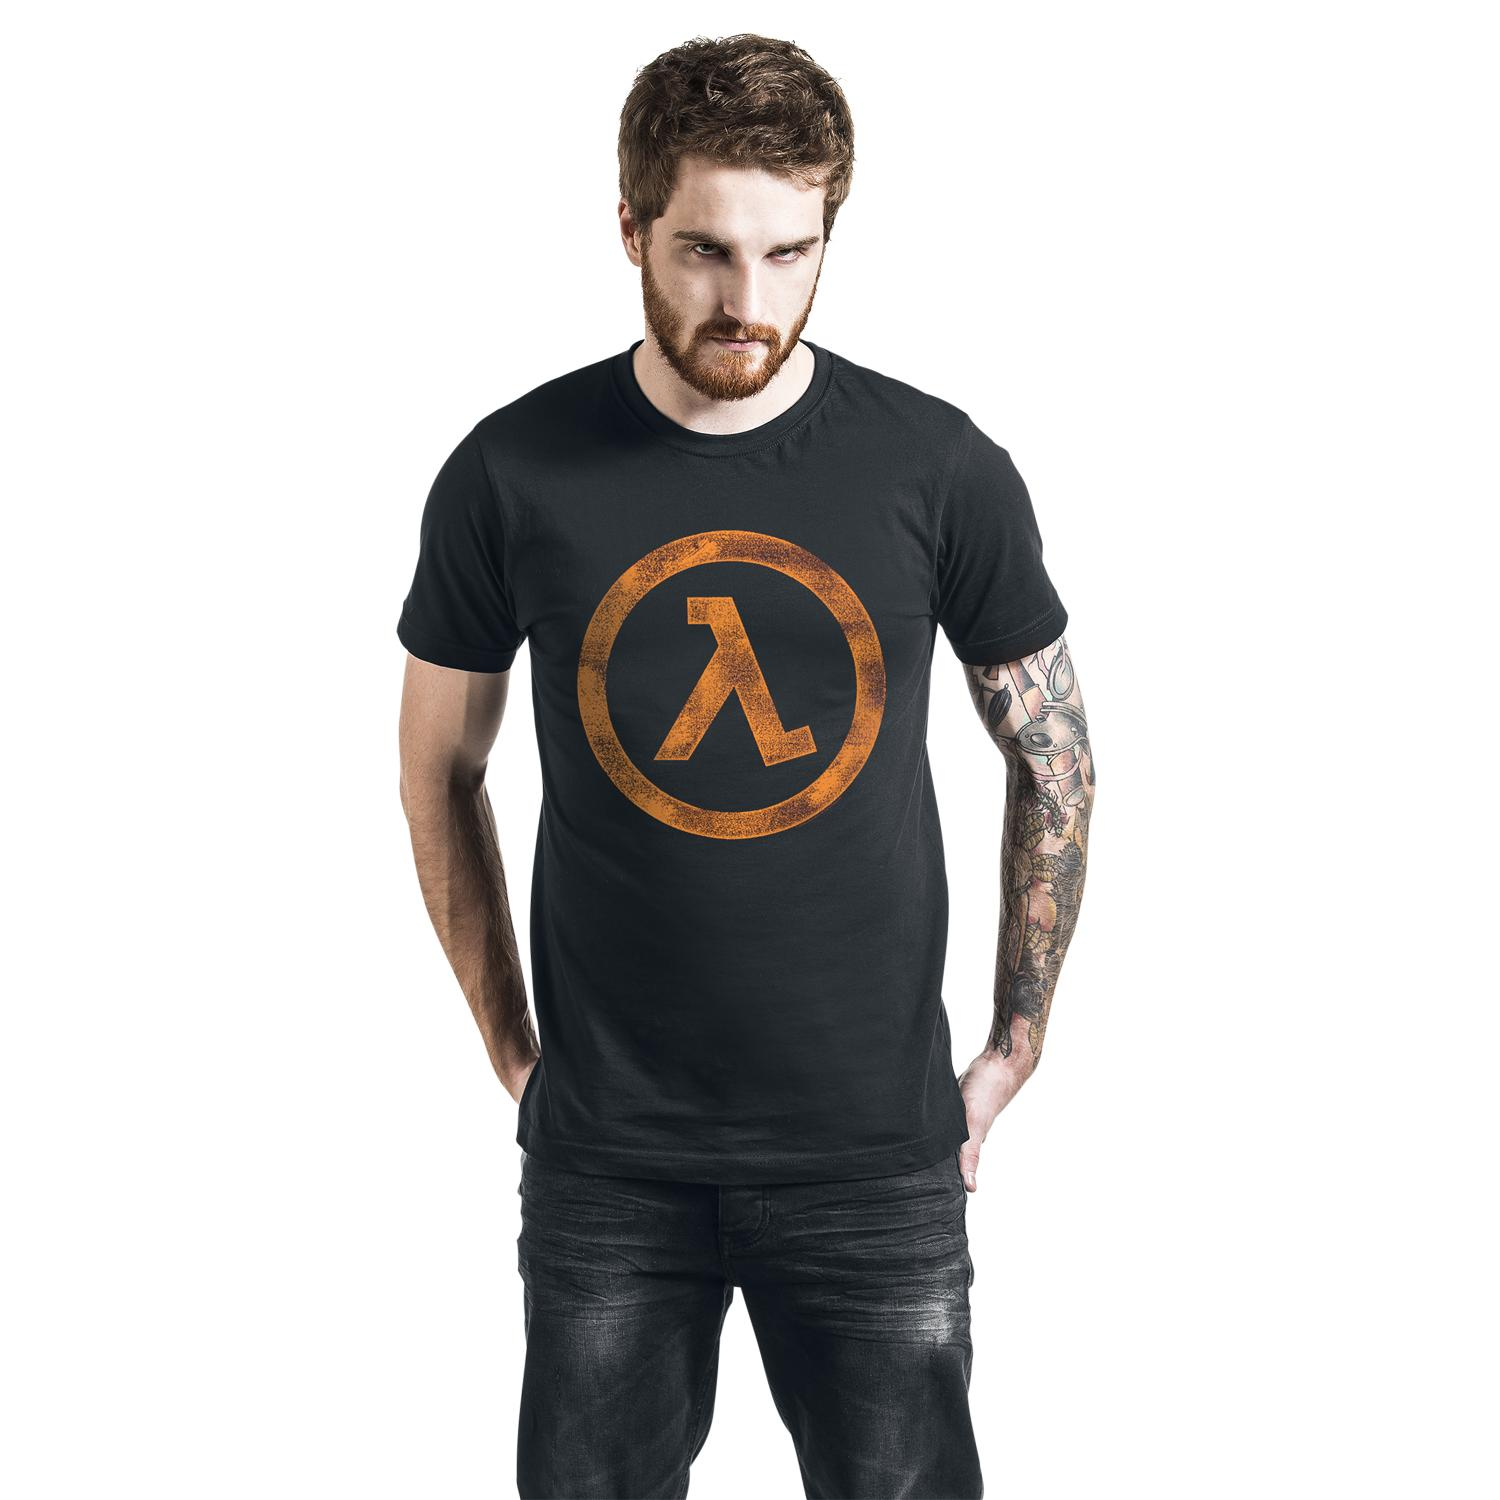 Half-Life 2 - The Orange Box T-shirt Design tee